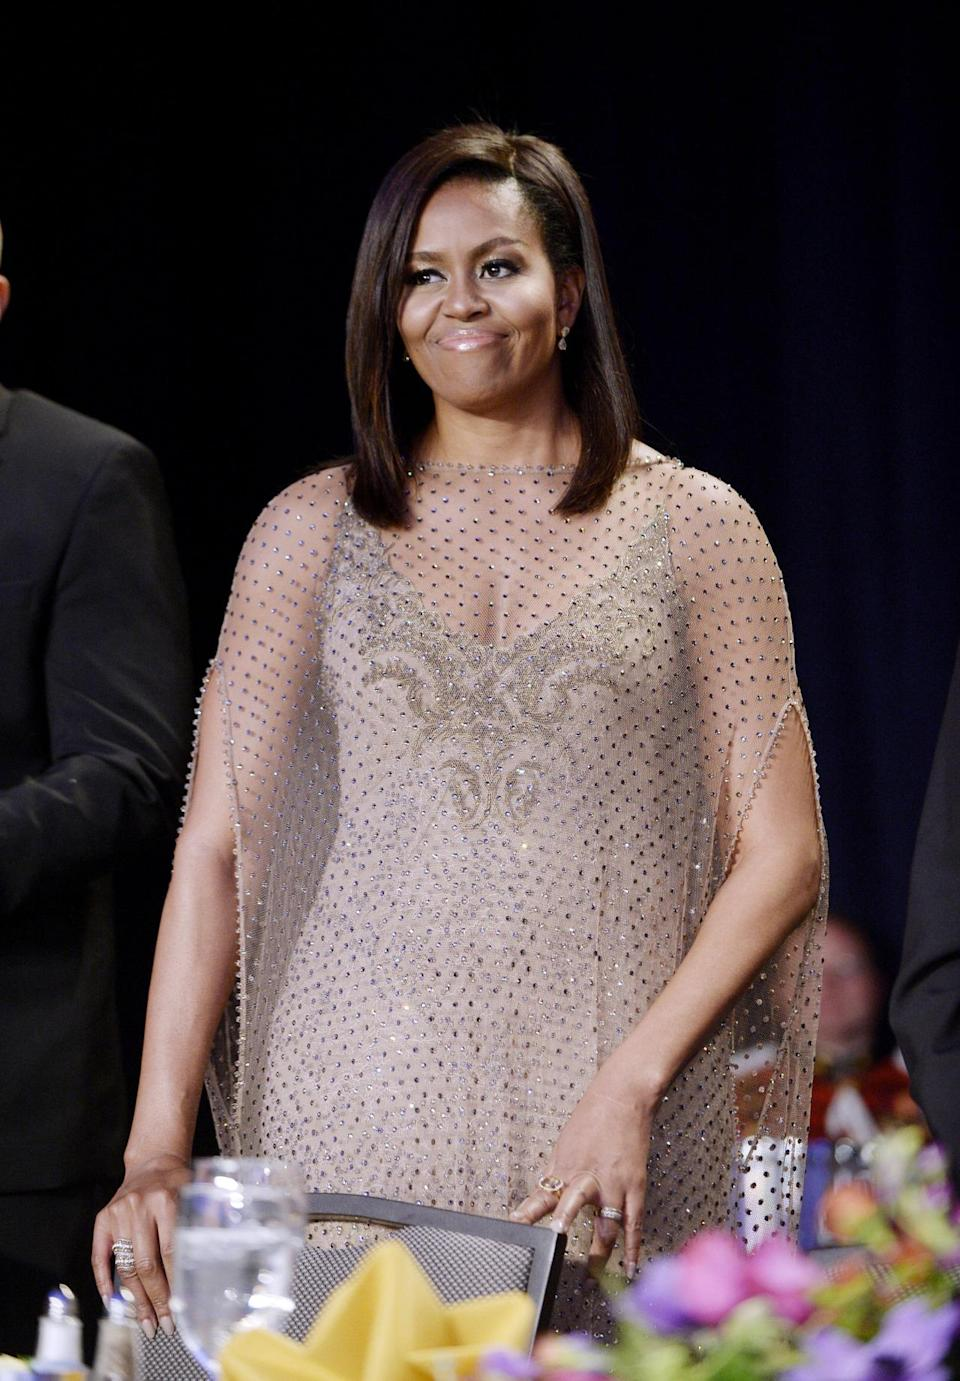 <p>For President Obama's eighth and final White House Correspondents' Association dinner, Michelle Obama went all out. The first lady killed it in Givenchy couture, giving the models and movie stars in attendance a run for their money. <i>(Photo: Getty Images)</i></p>